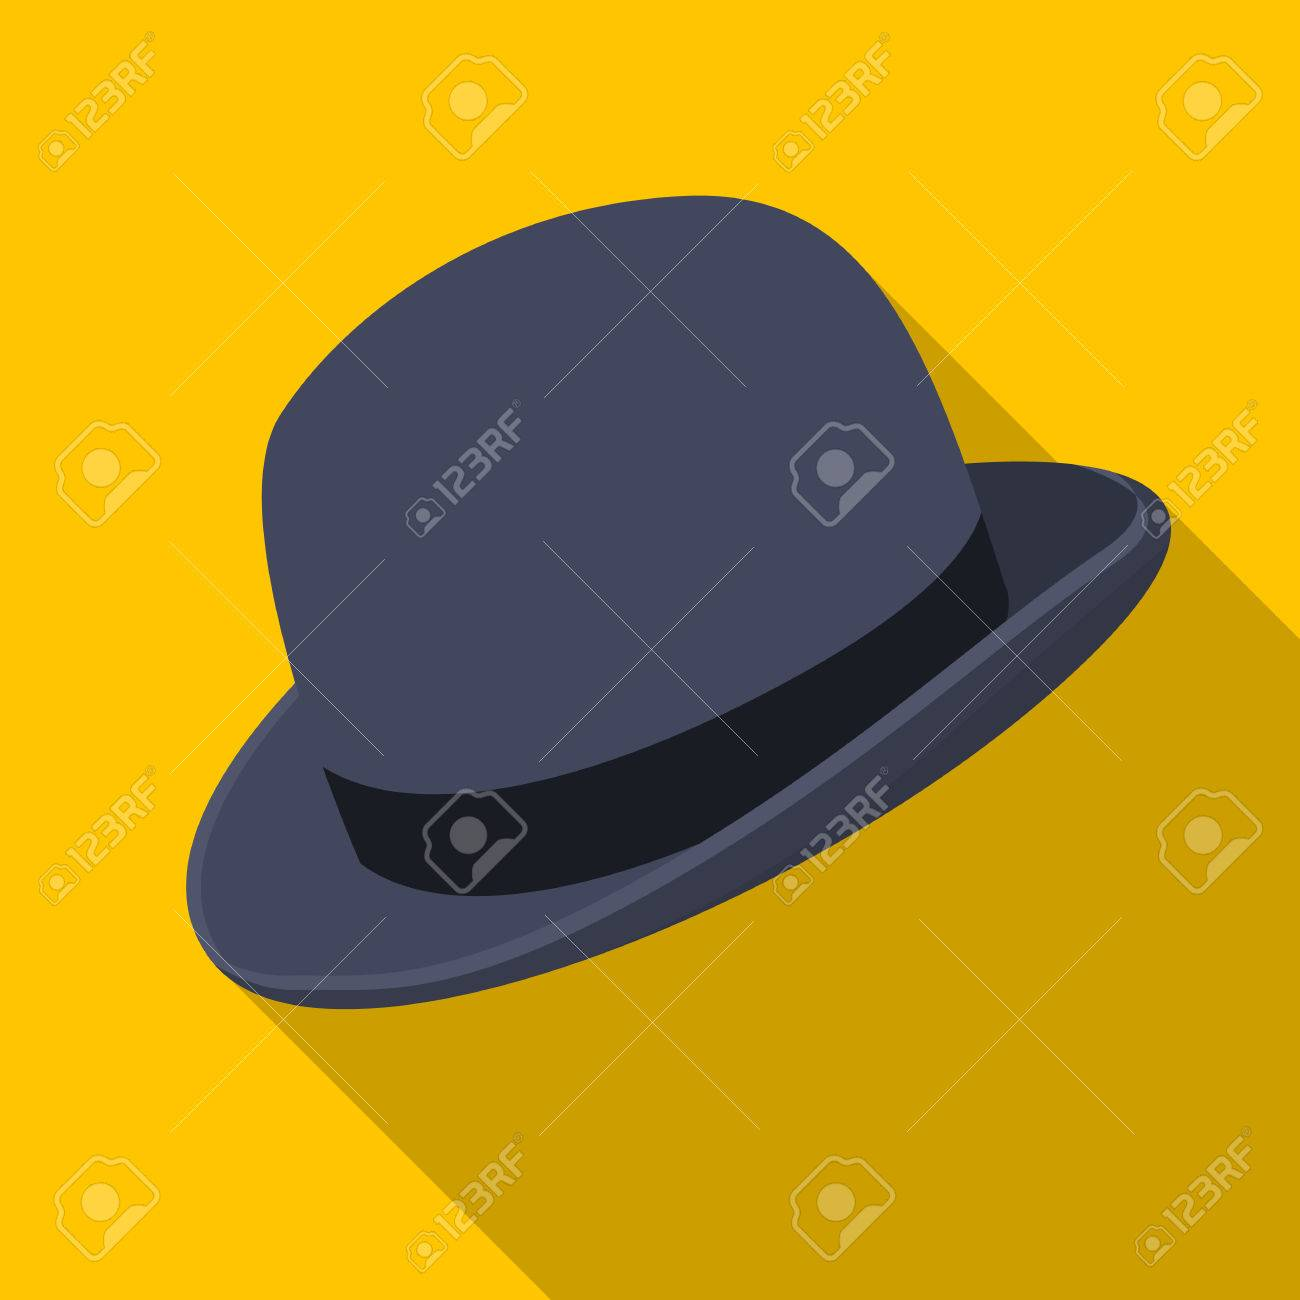 b789e57616d48 Bowler hat icon in flat style isolated on white background. Hipster style  symbol stock vector